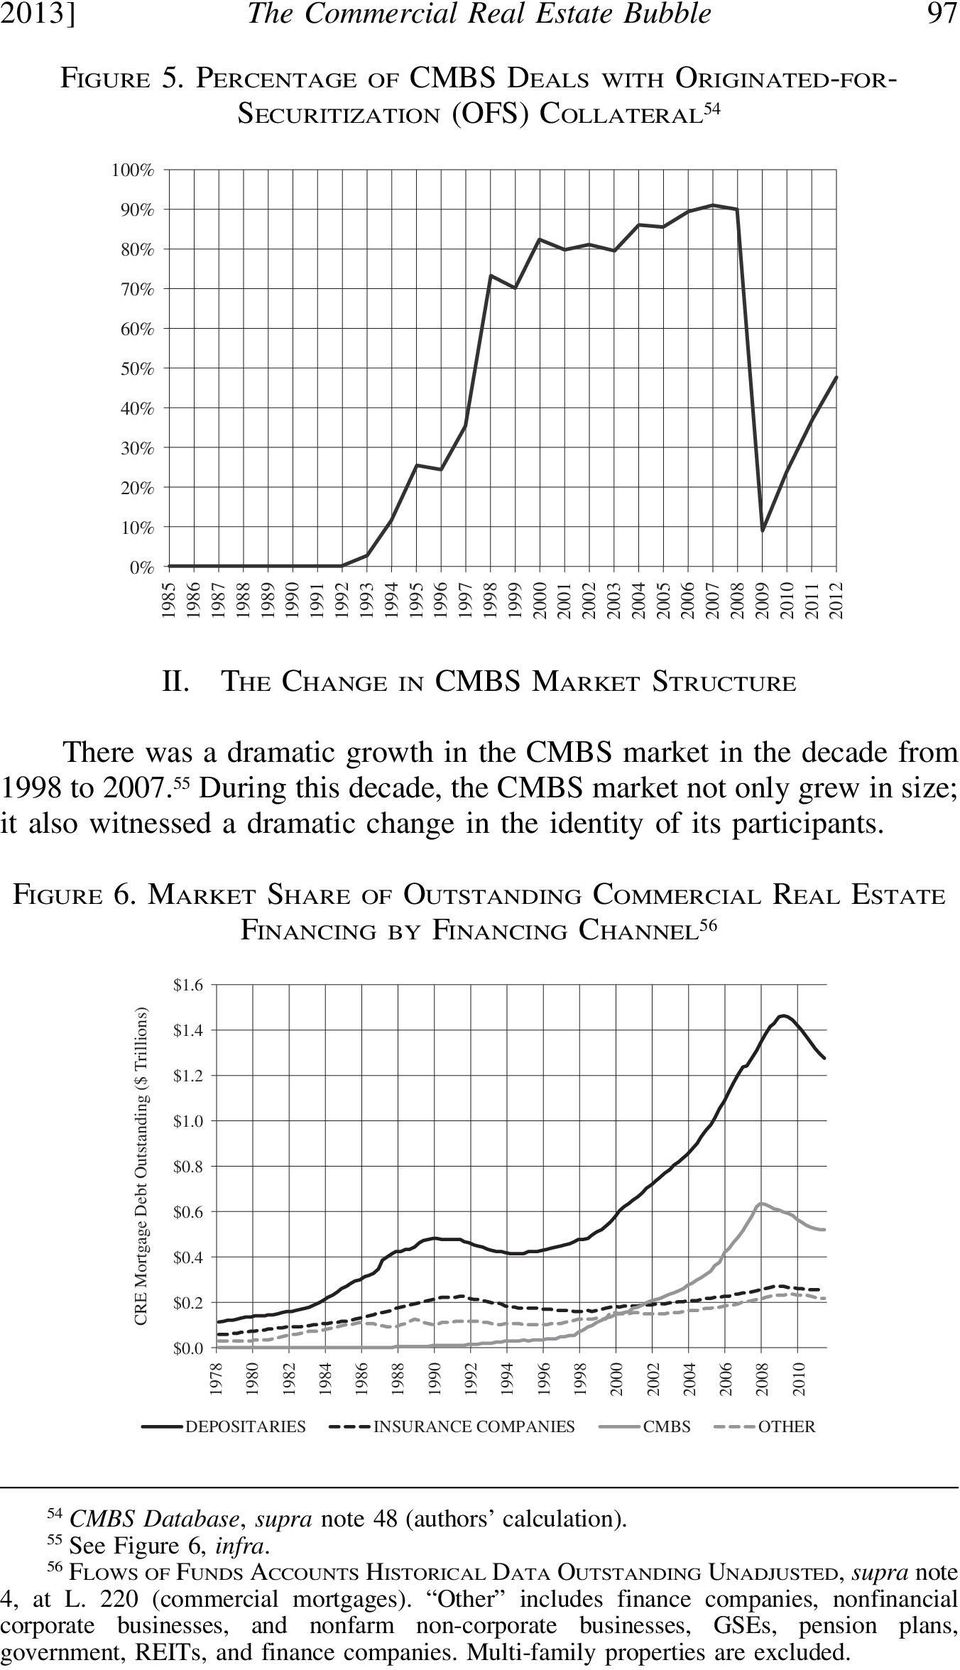 2000 2001 2002 2003 2004 2005 2006 2007 2008 2009 2010 2011 2012 II. THE CHANGE IN CMBS MARKET STRUCTURE There was a dramatic growth in the CMBS market in the decade from 1998 to 2007.